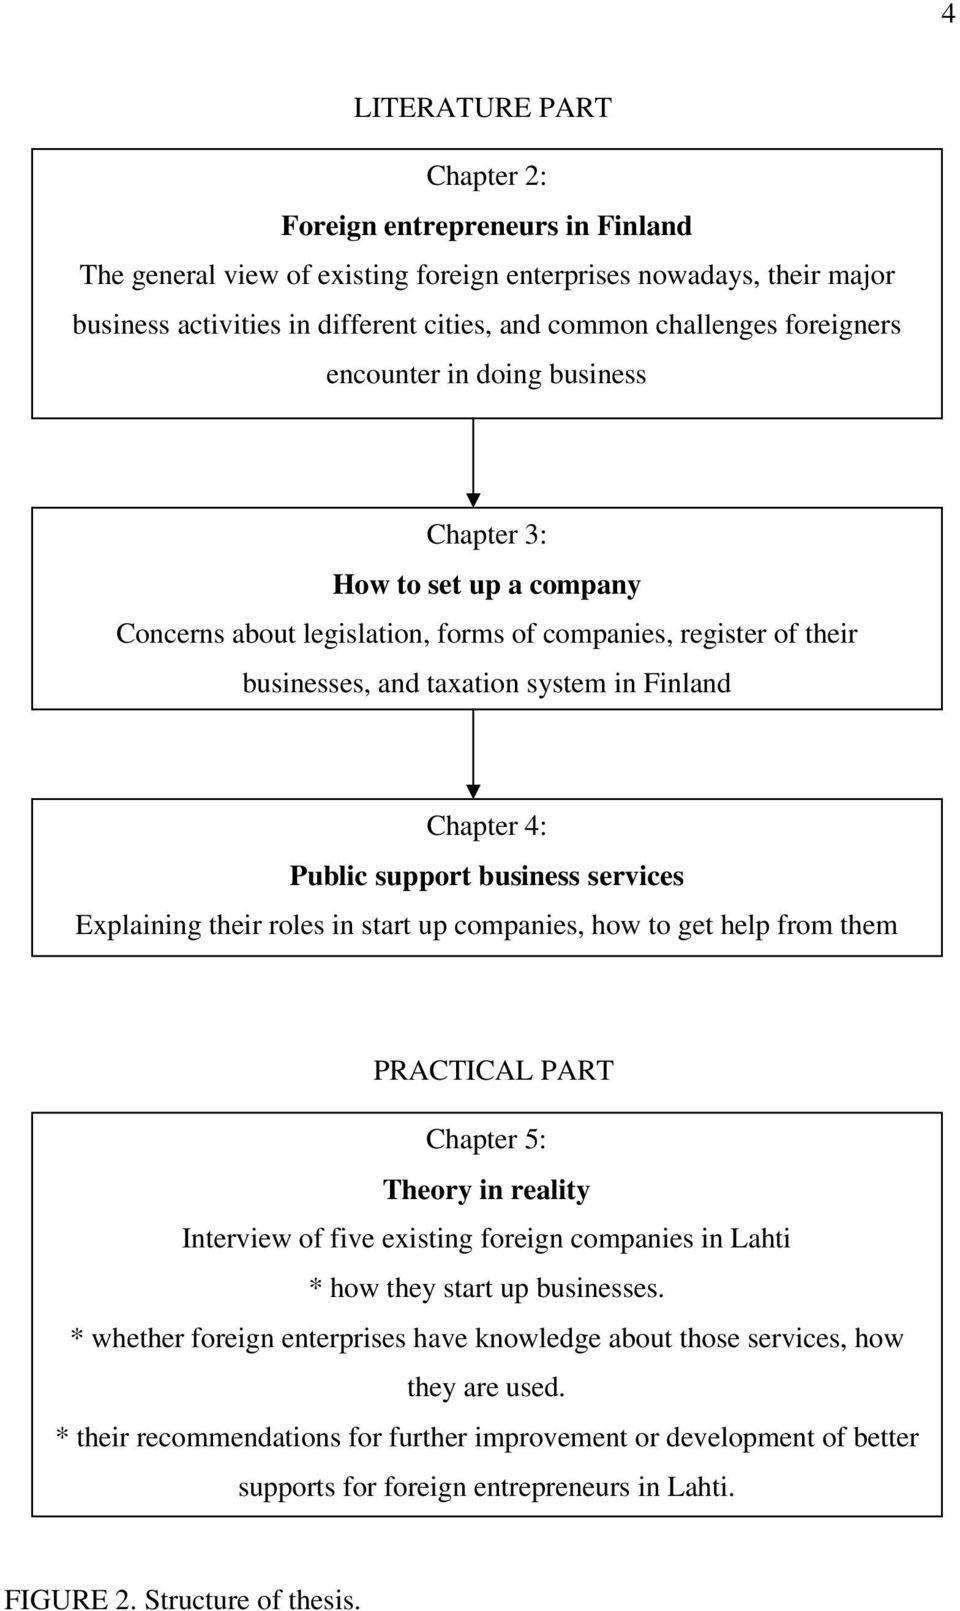 Public support business services Explaining their roles in start up companies, how to get help from them PRACTICAL PART Chapter 5: Theory in reality Interview of five existing foreign companies in